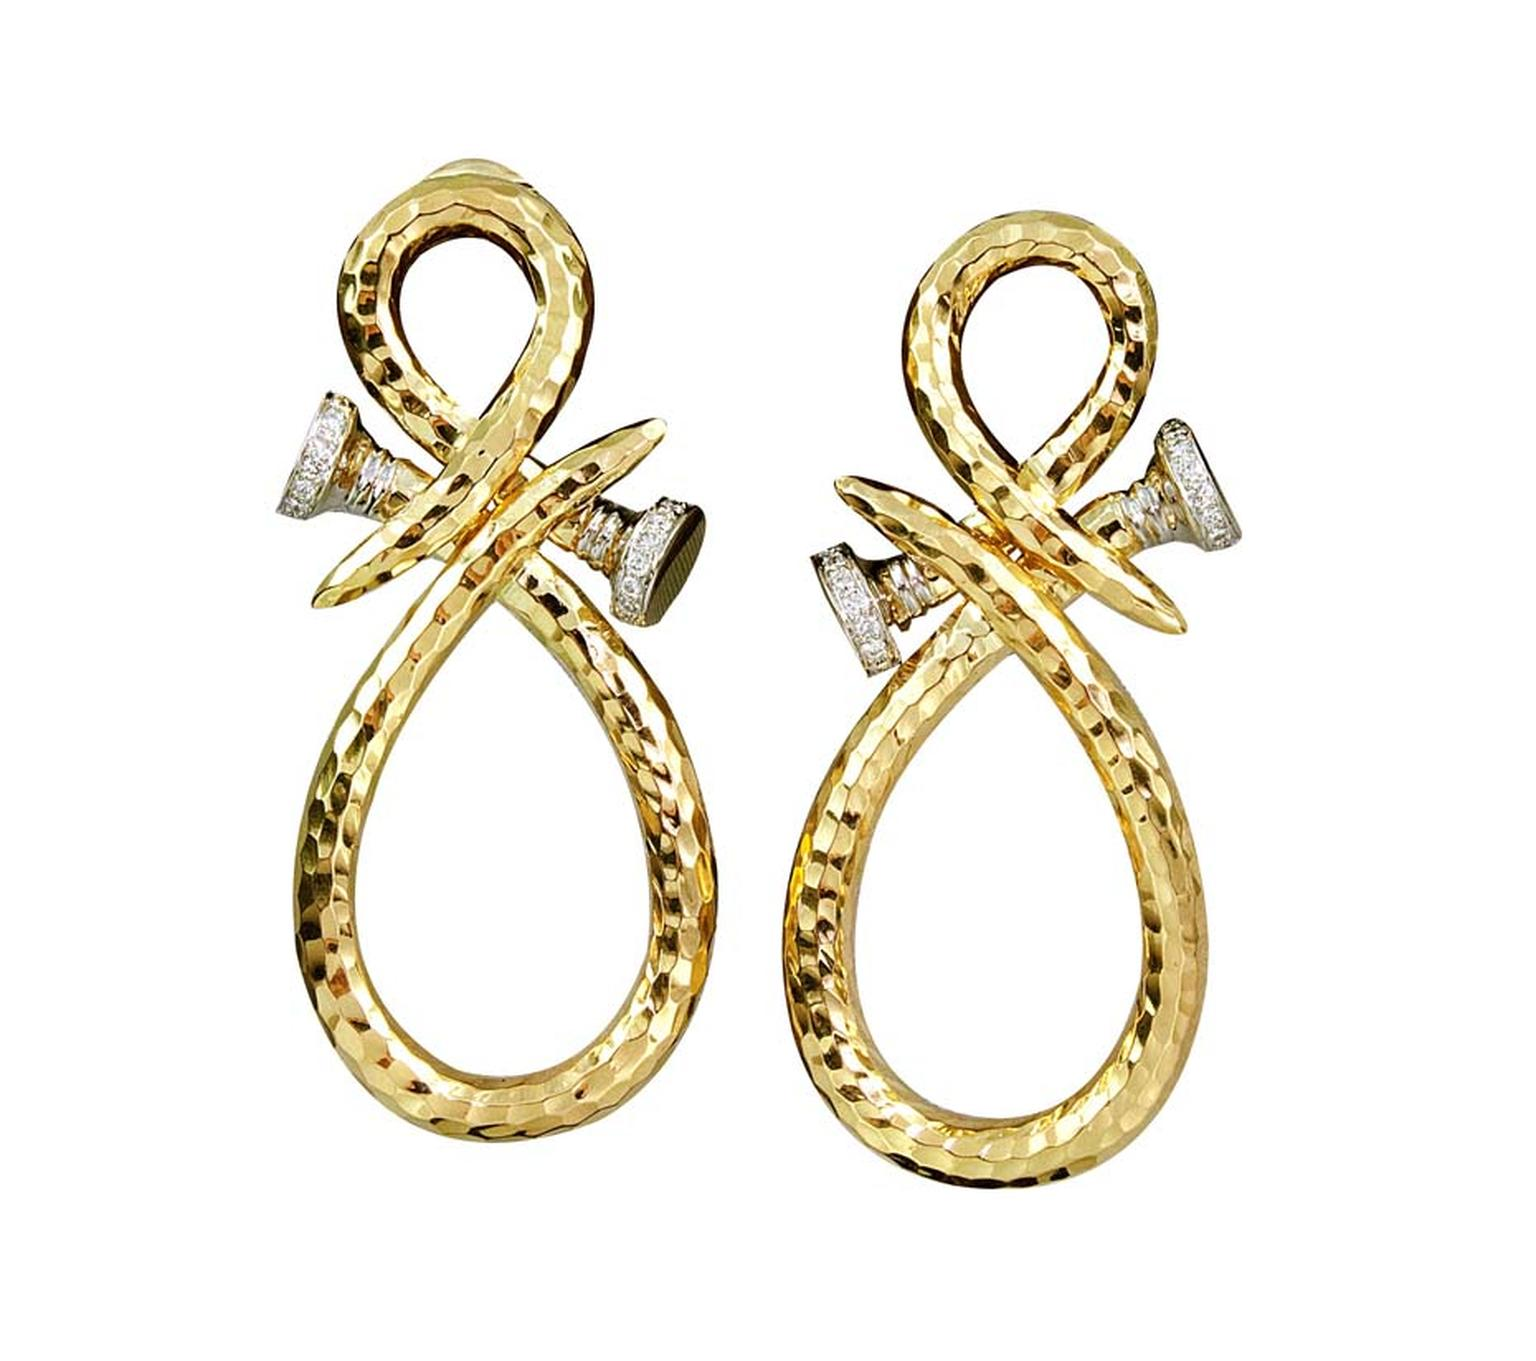 David Webb Tool Chest Collection Curved Nail earrings with brilliant-cut diamonds in hammered gold and platinum ($23,800).